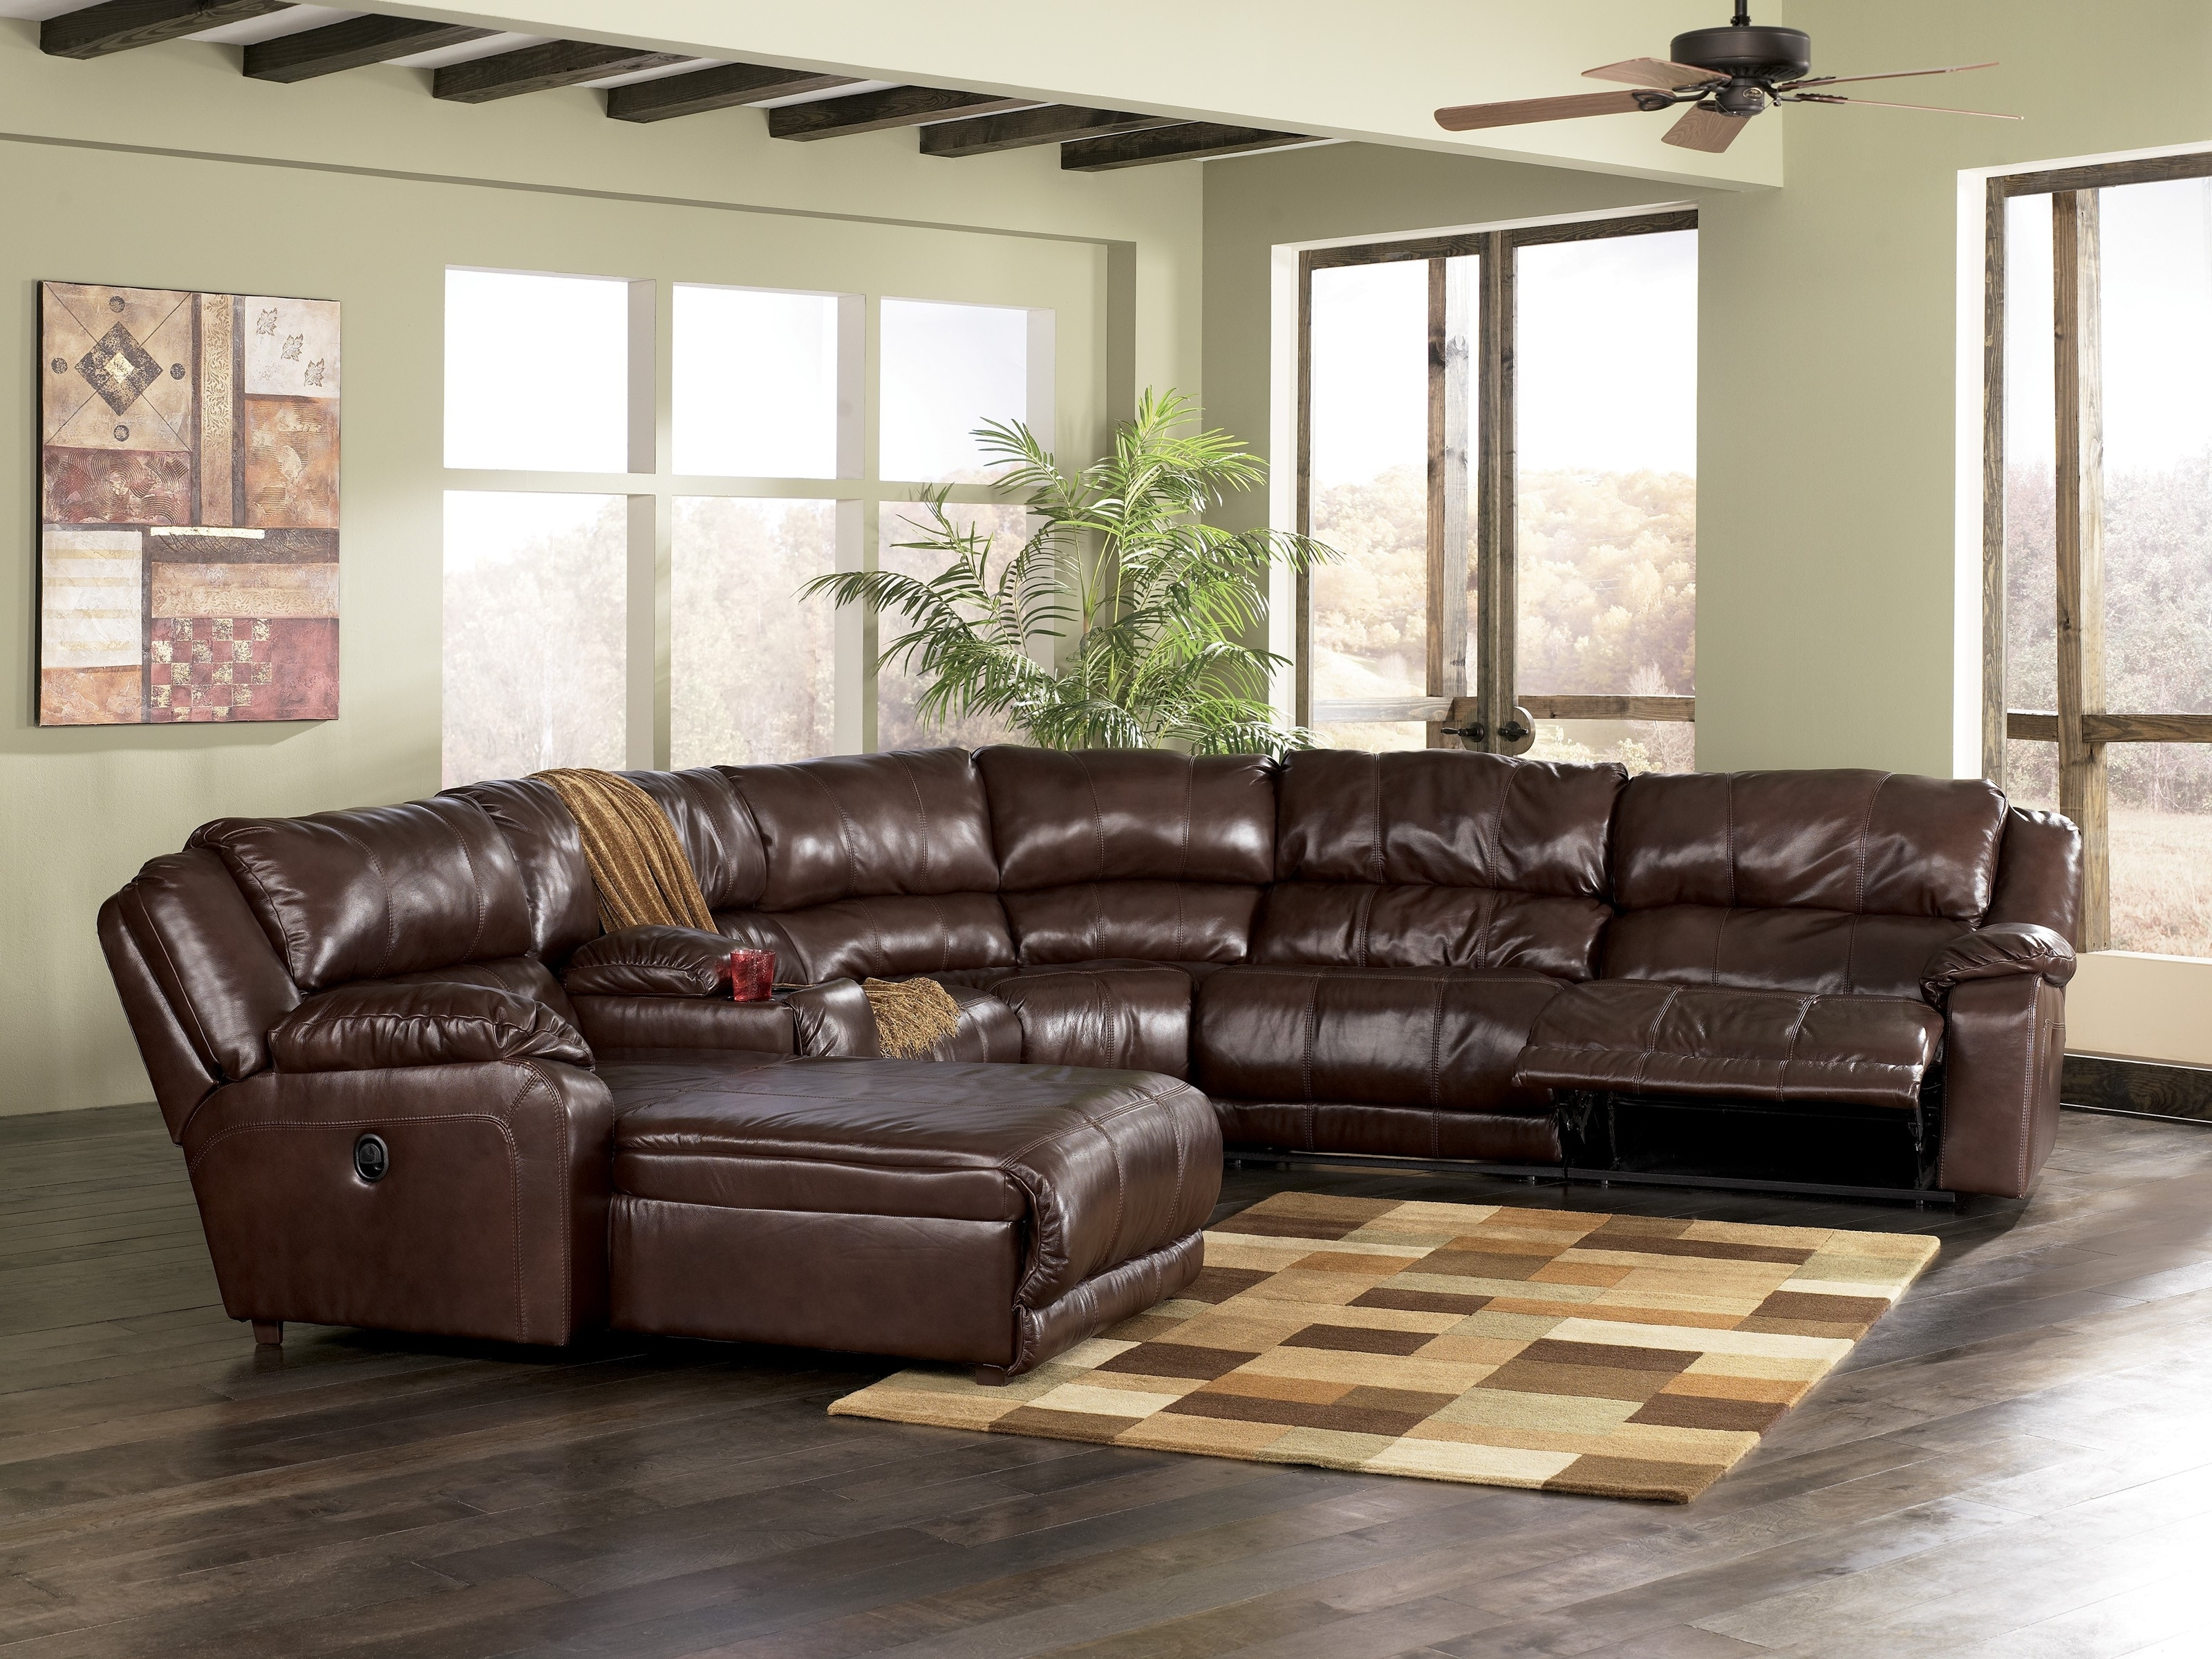 Most Recent Trend L Shaped Sectional Sofa With Recliner 97 In Large Leather Within Leather L Shaped Sectional Sofas (View 13 of 15)